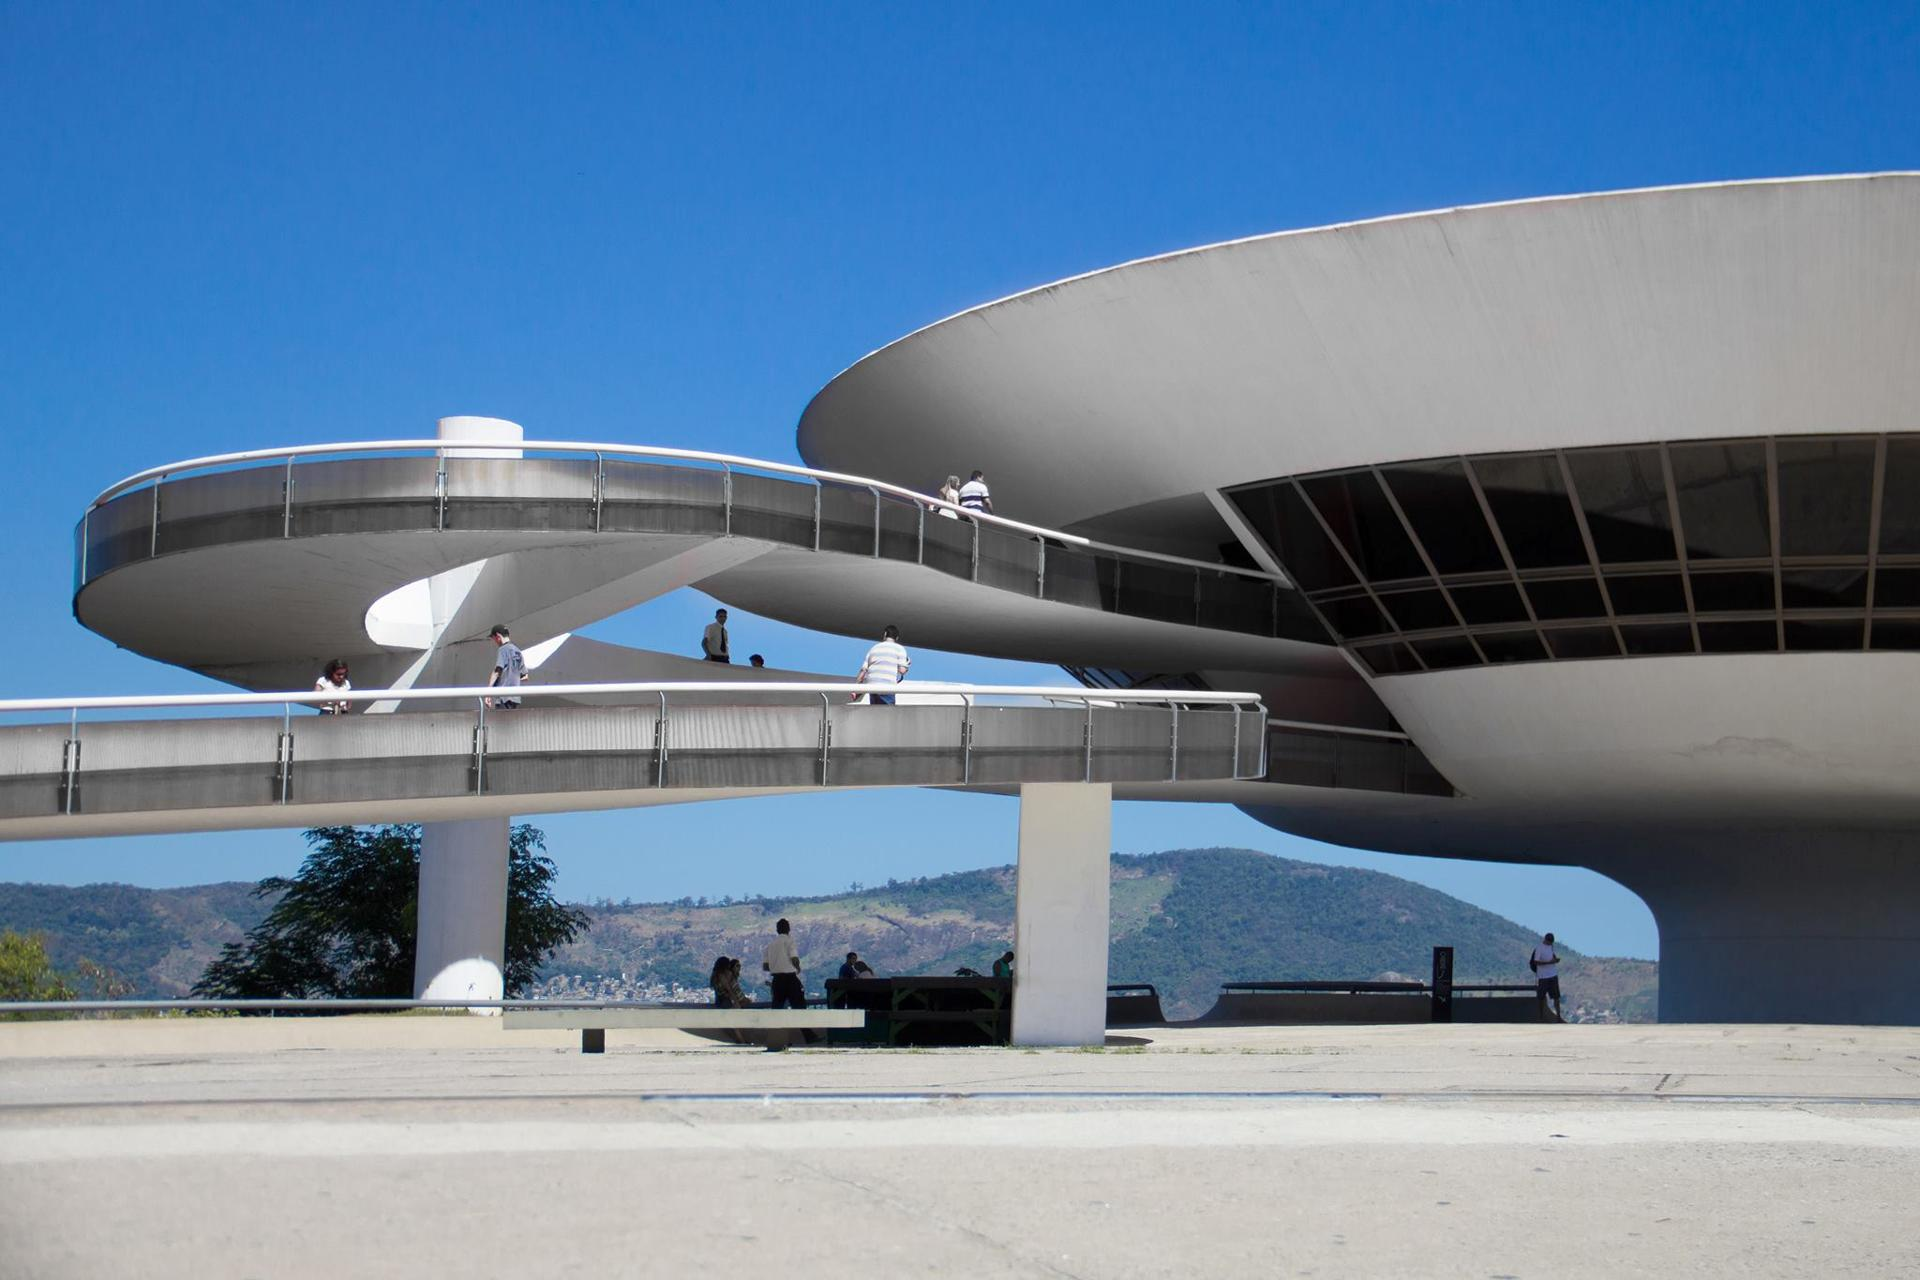 Museum in Niteroi -  Brazil by architect Oscar Niemeyer